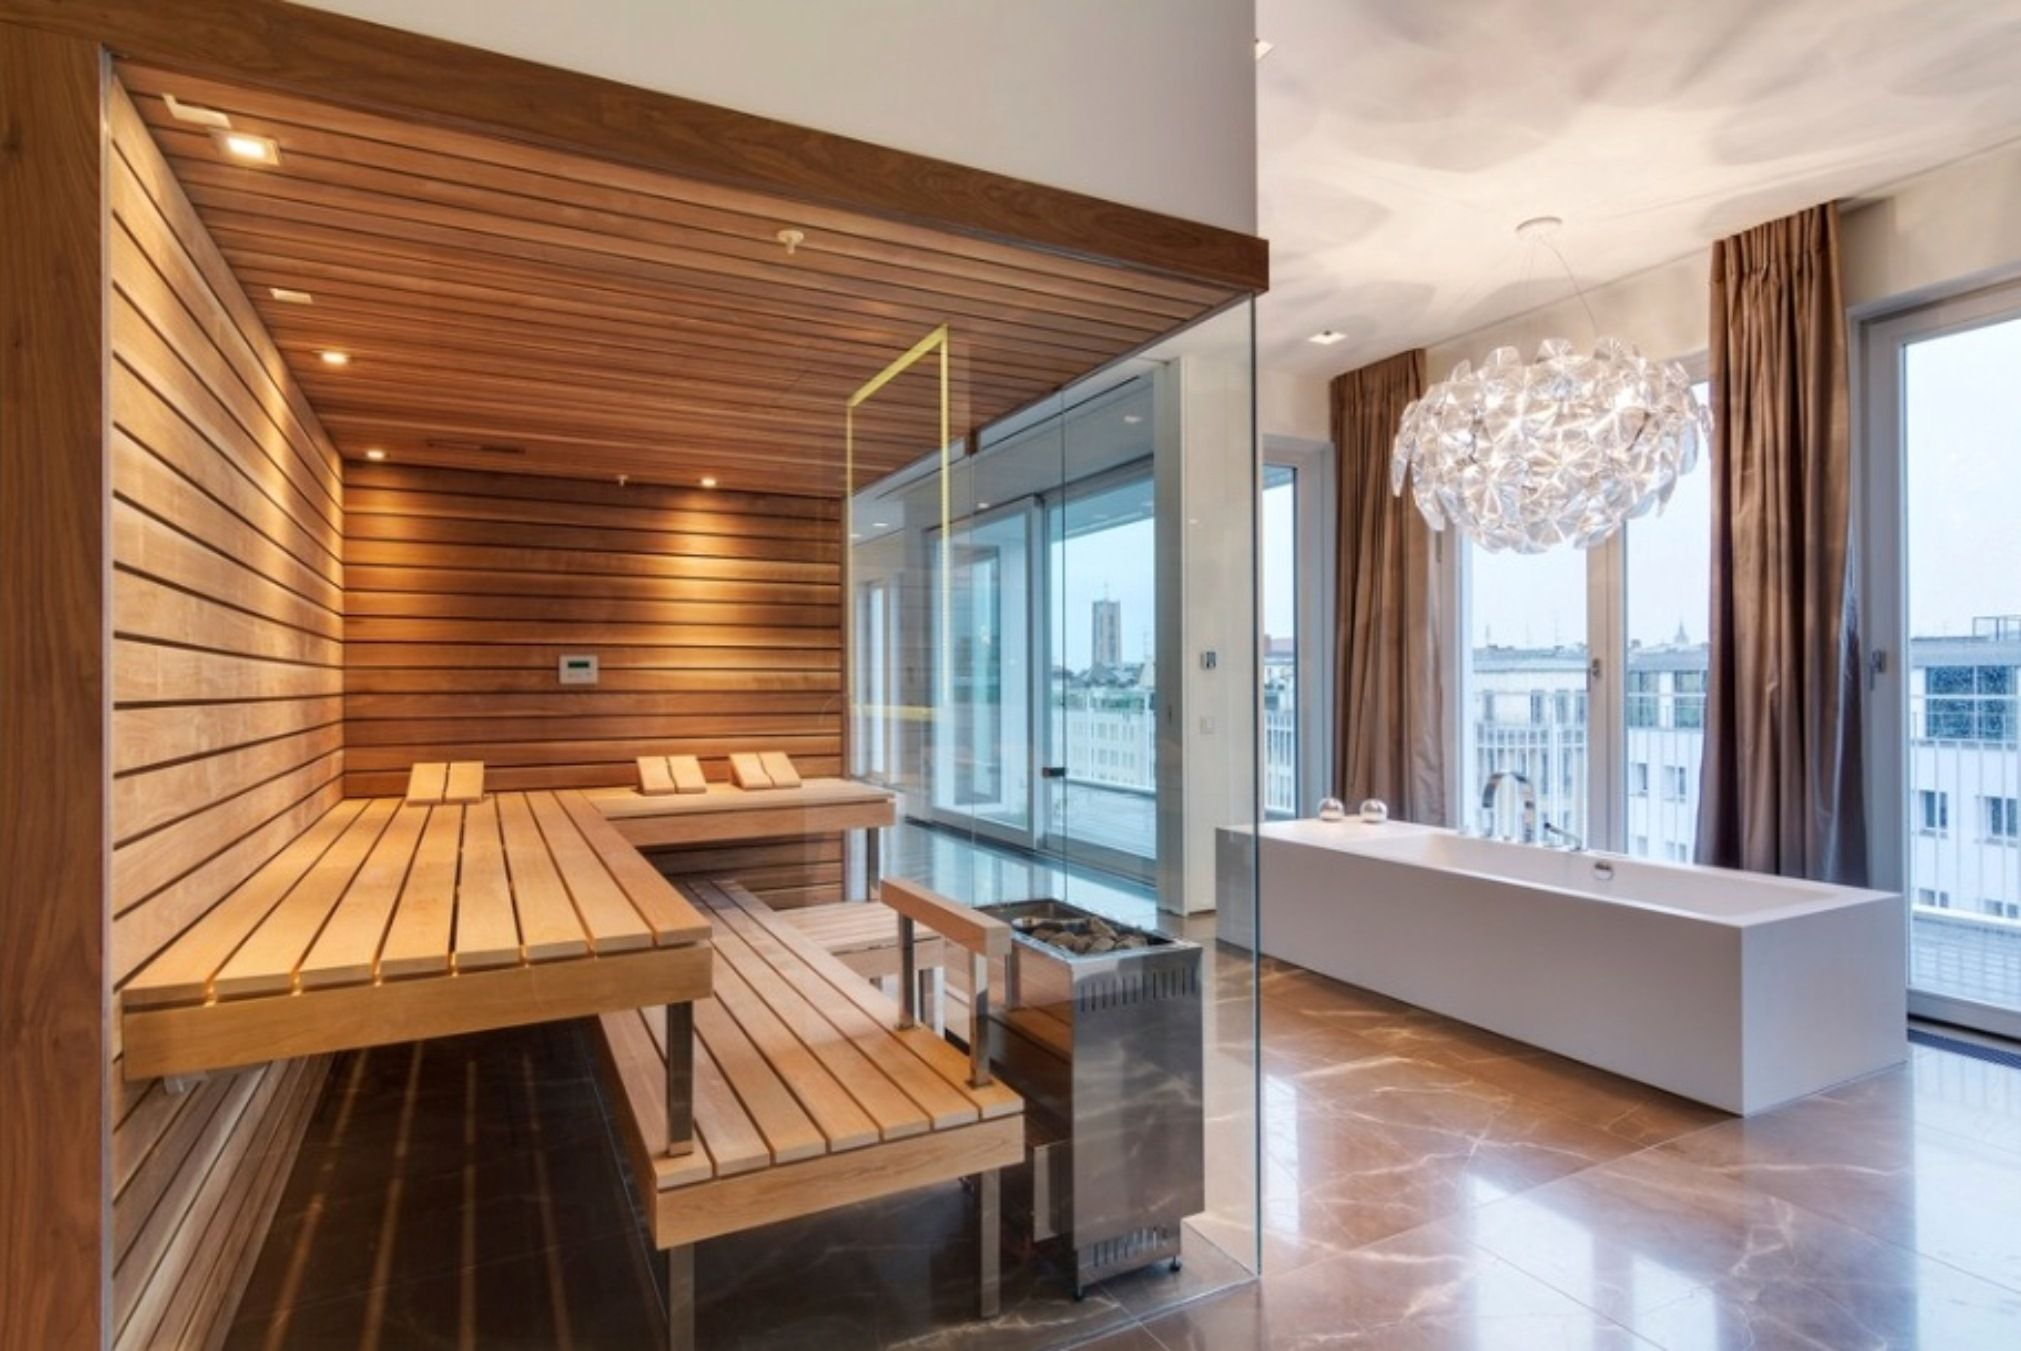 Incroyable An Elegant Sauna Evening To Invite Your Guests To Is The Top Notch Dream  Event